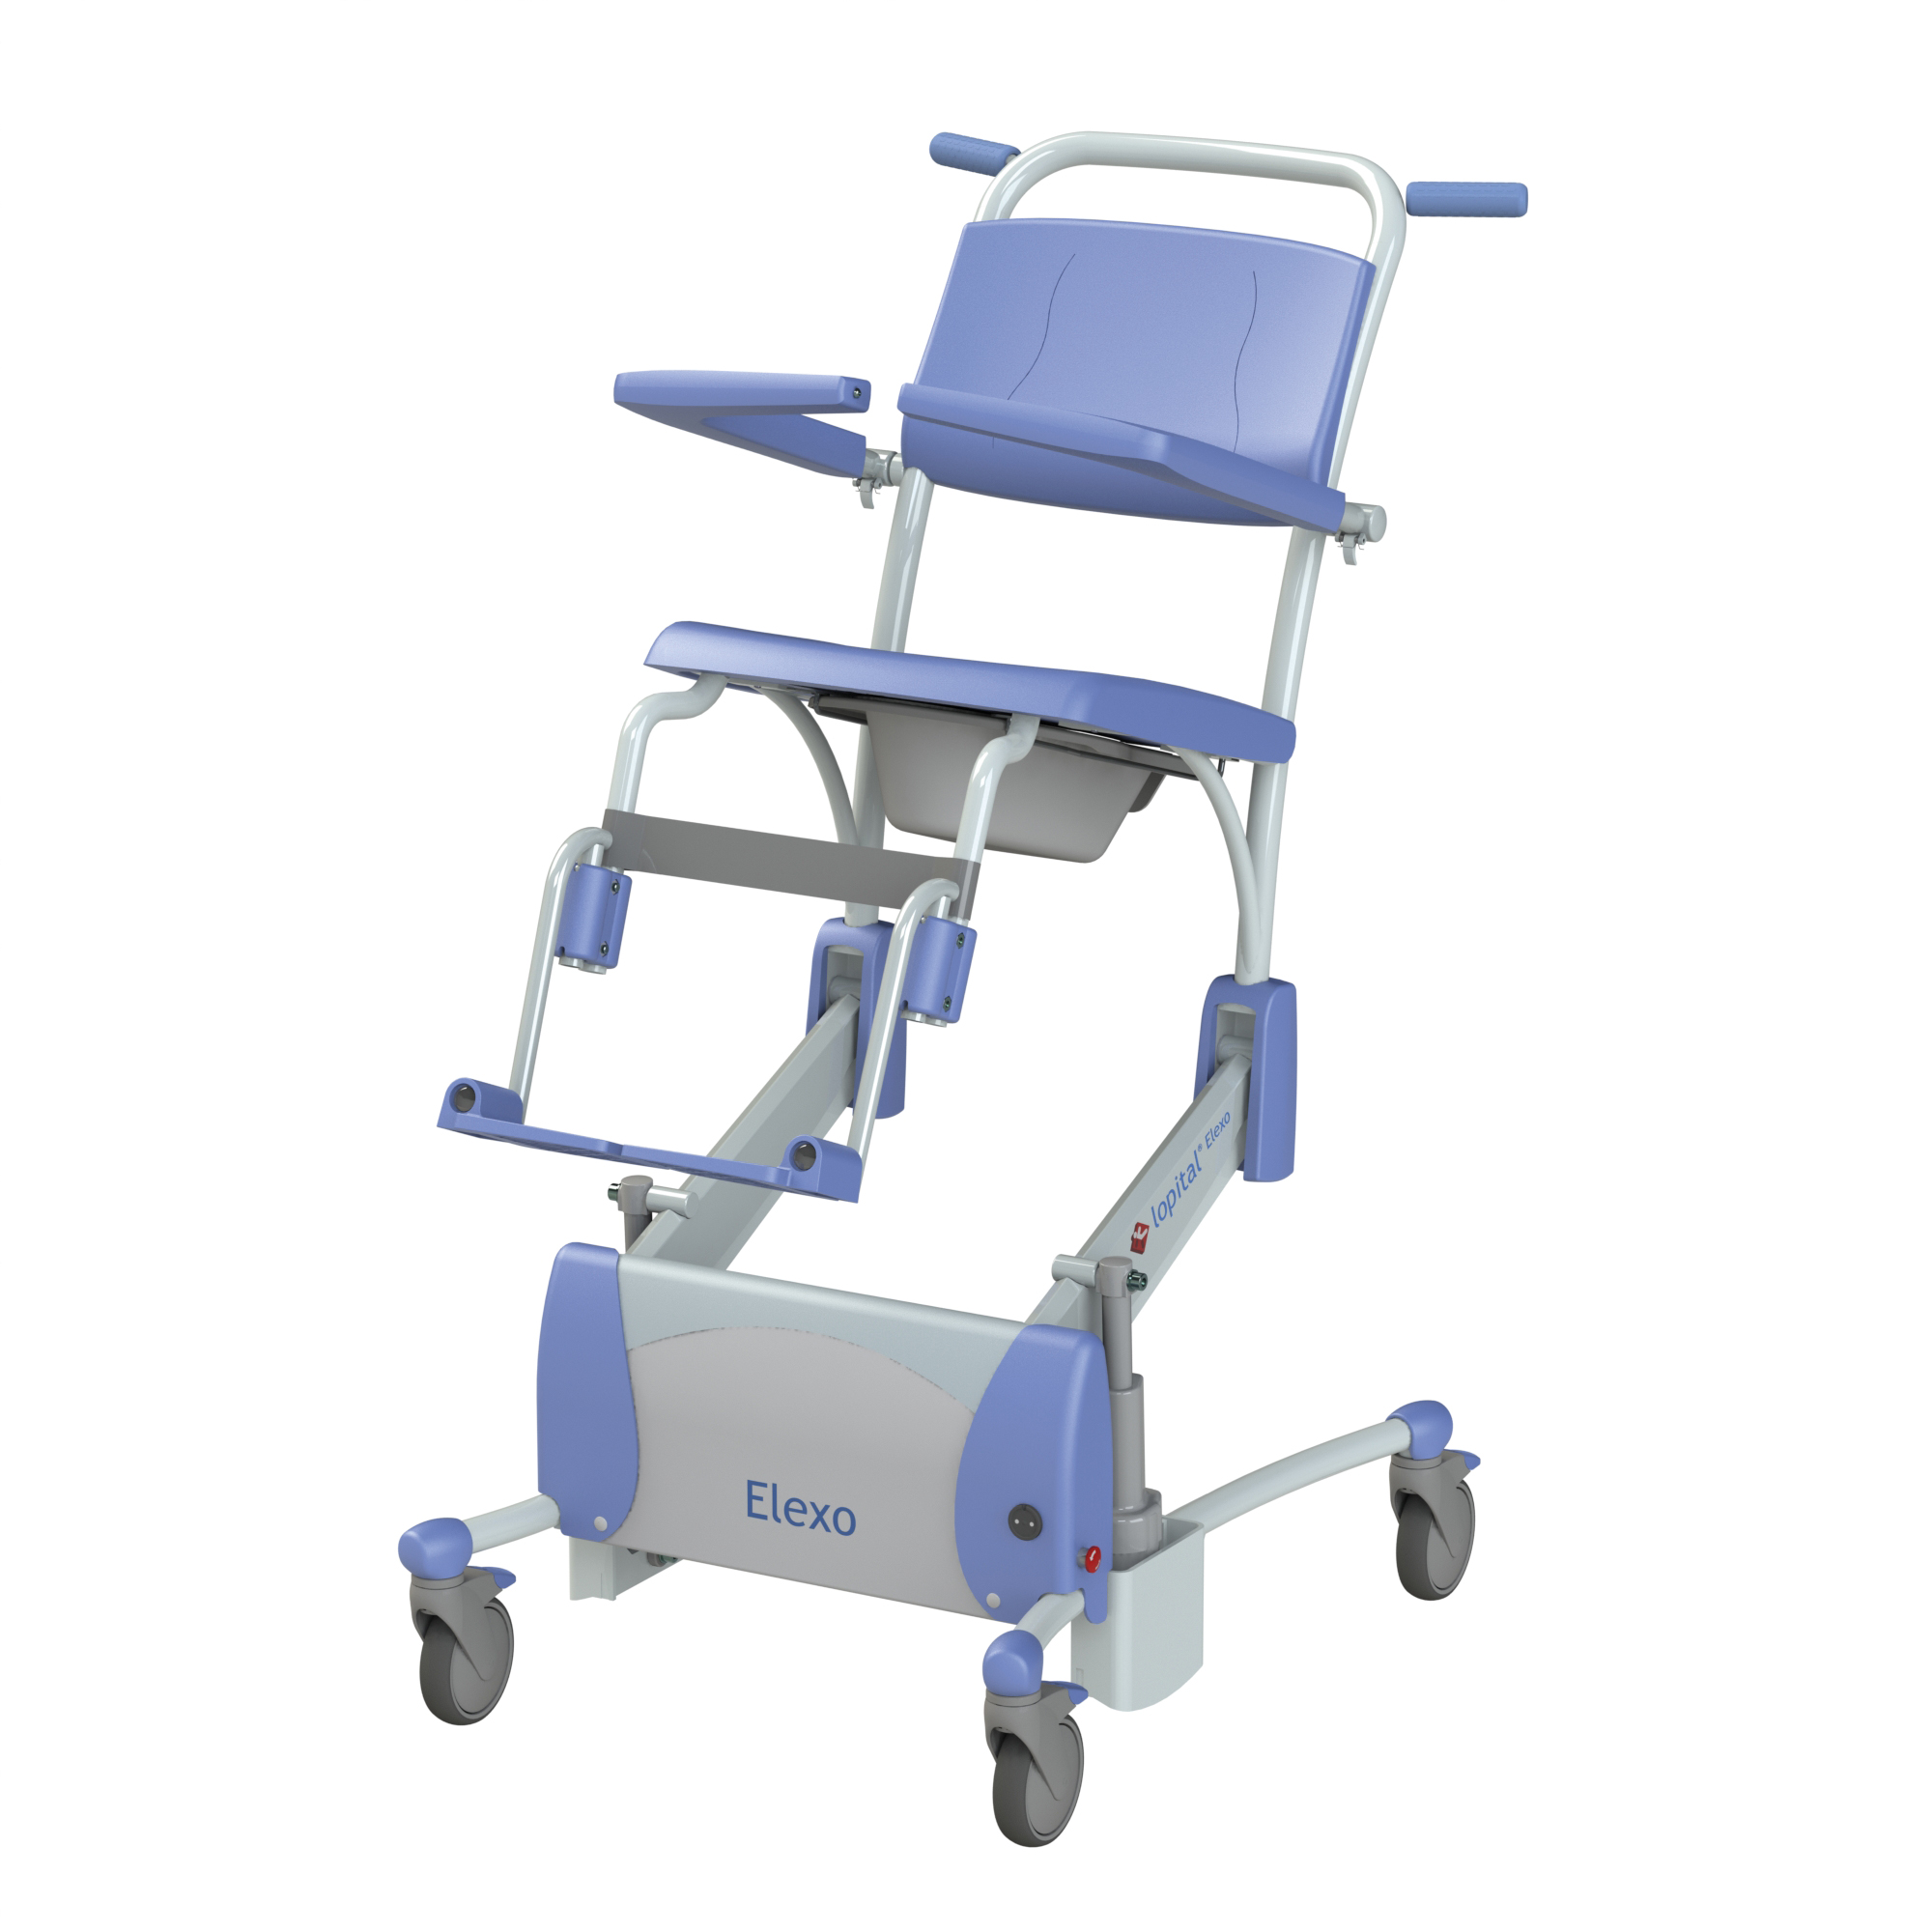 trolley p yorkshire hydraulic adjustable shower height the equipment bathing care timo